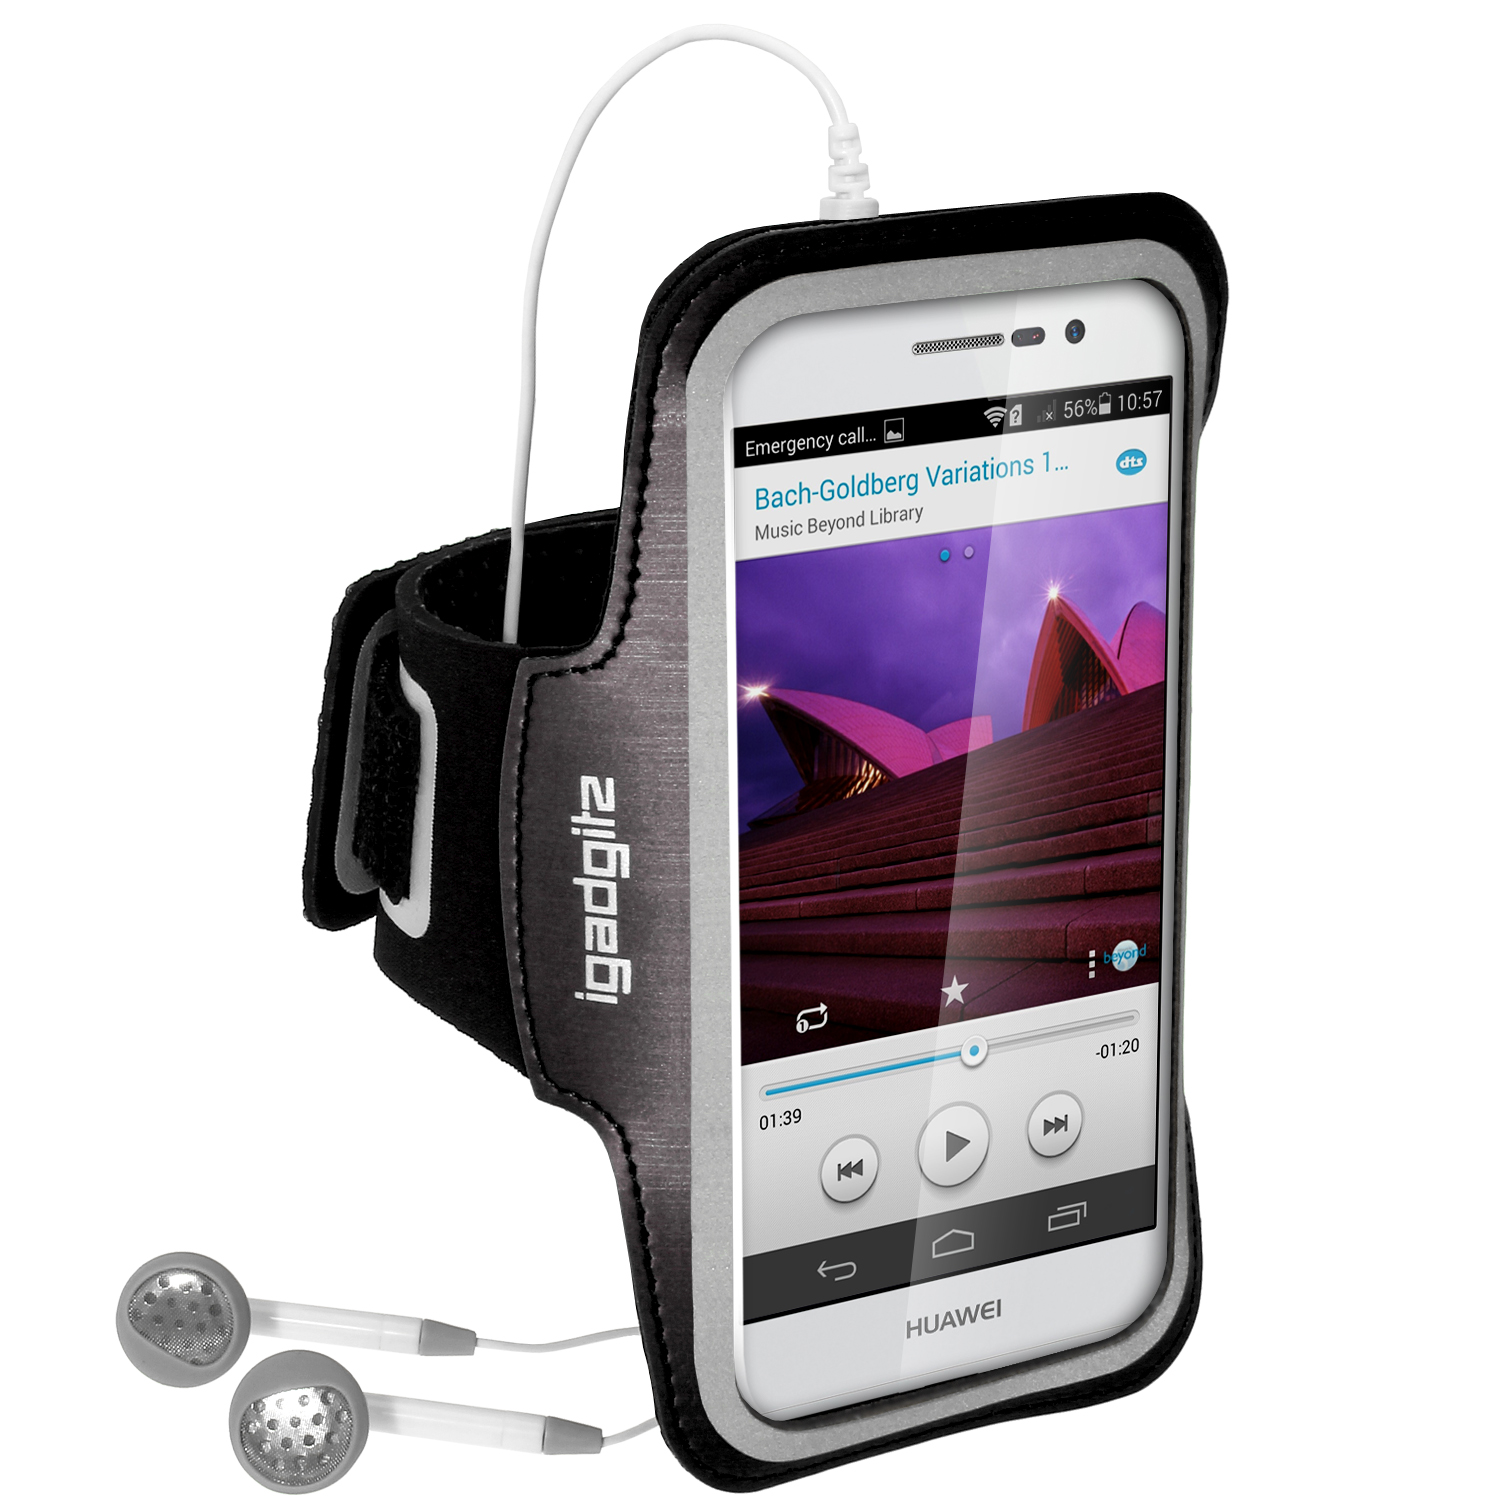 iGadgitz Reflective Anti-Slip Sports Jogging Gym Armband for Huawei Ascend P7 with Key Slot (various colours)